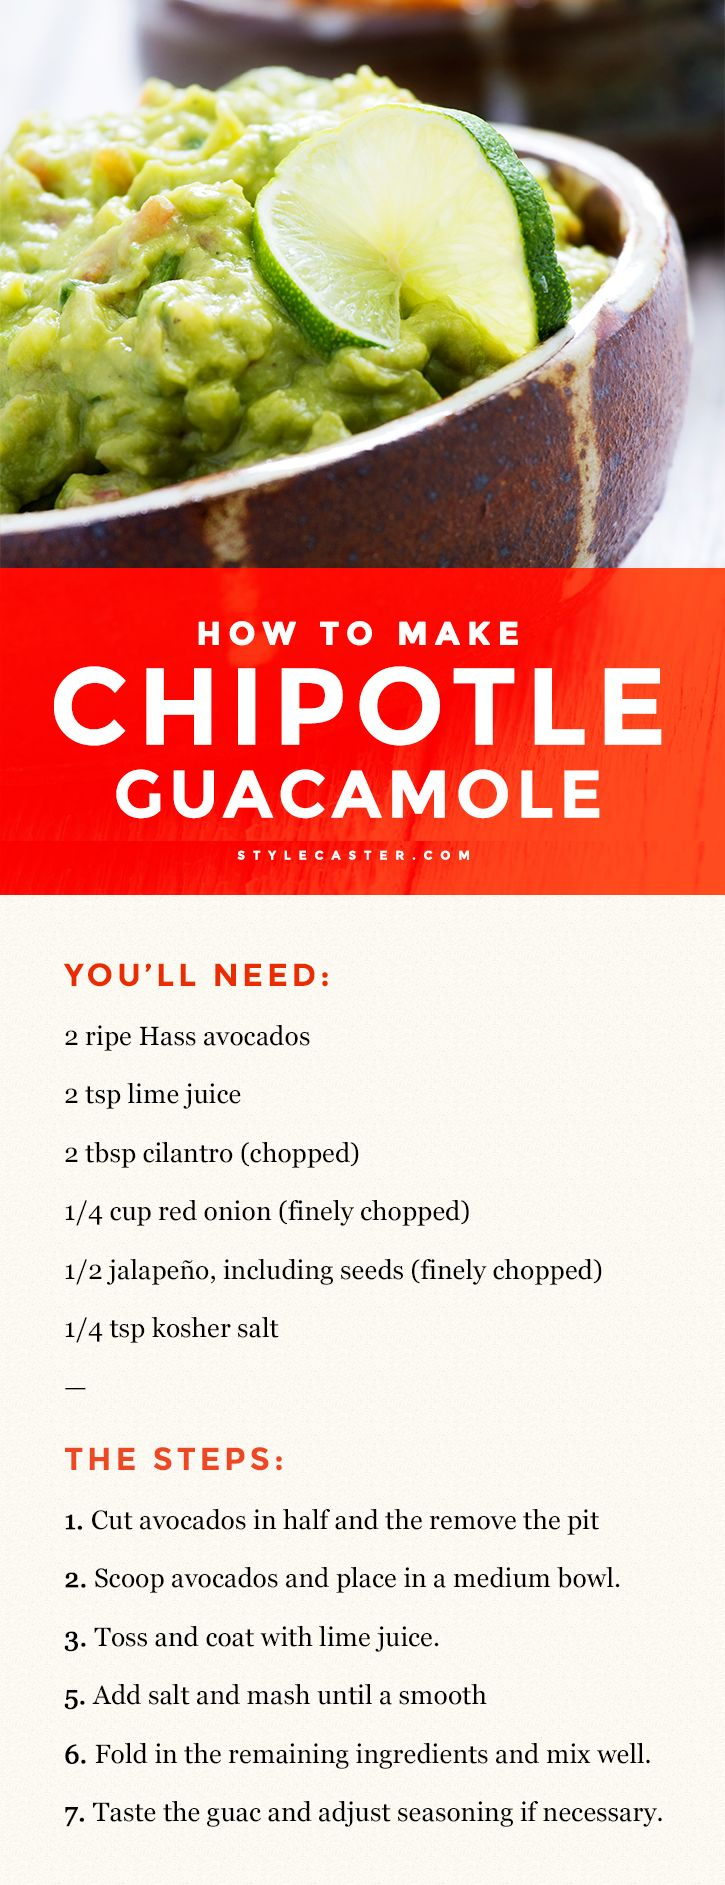 Chipotle Guacamole Recipe is Revealed!